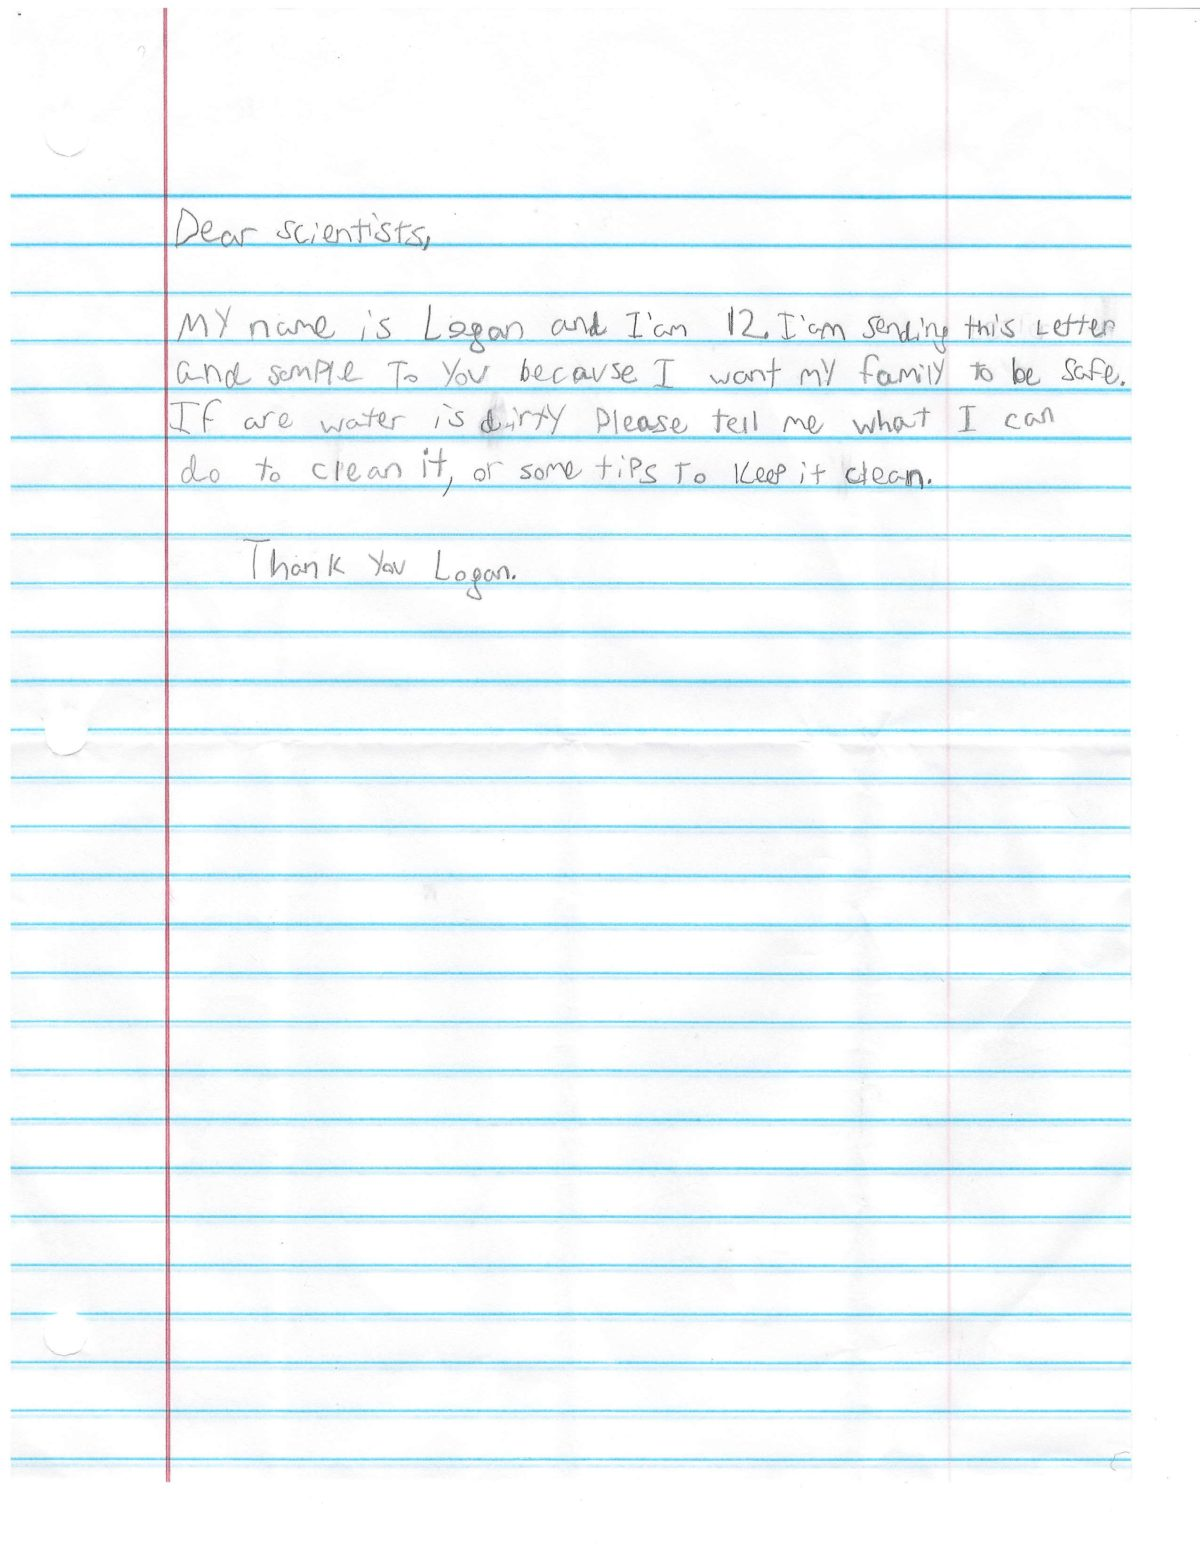 LETTER FROM LOGAN